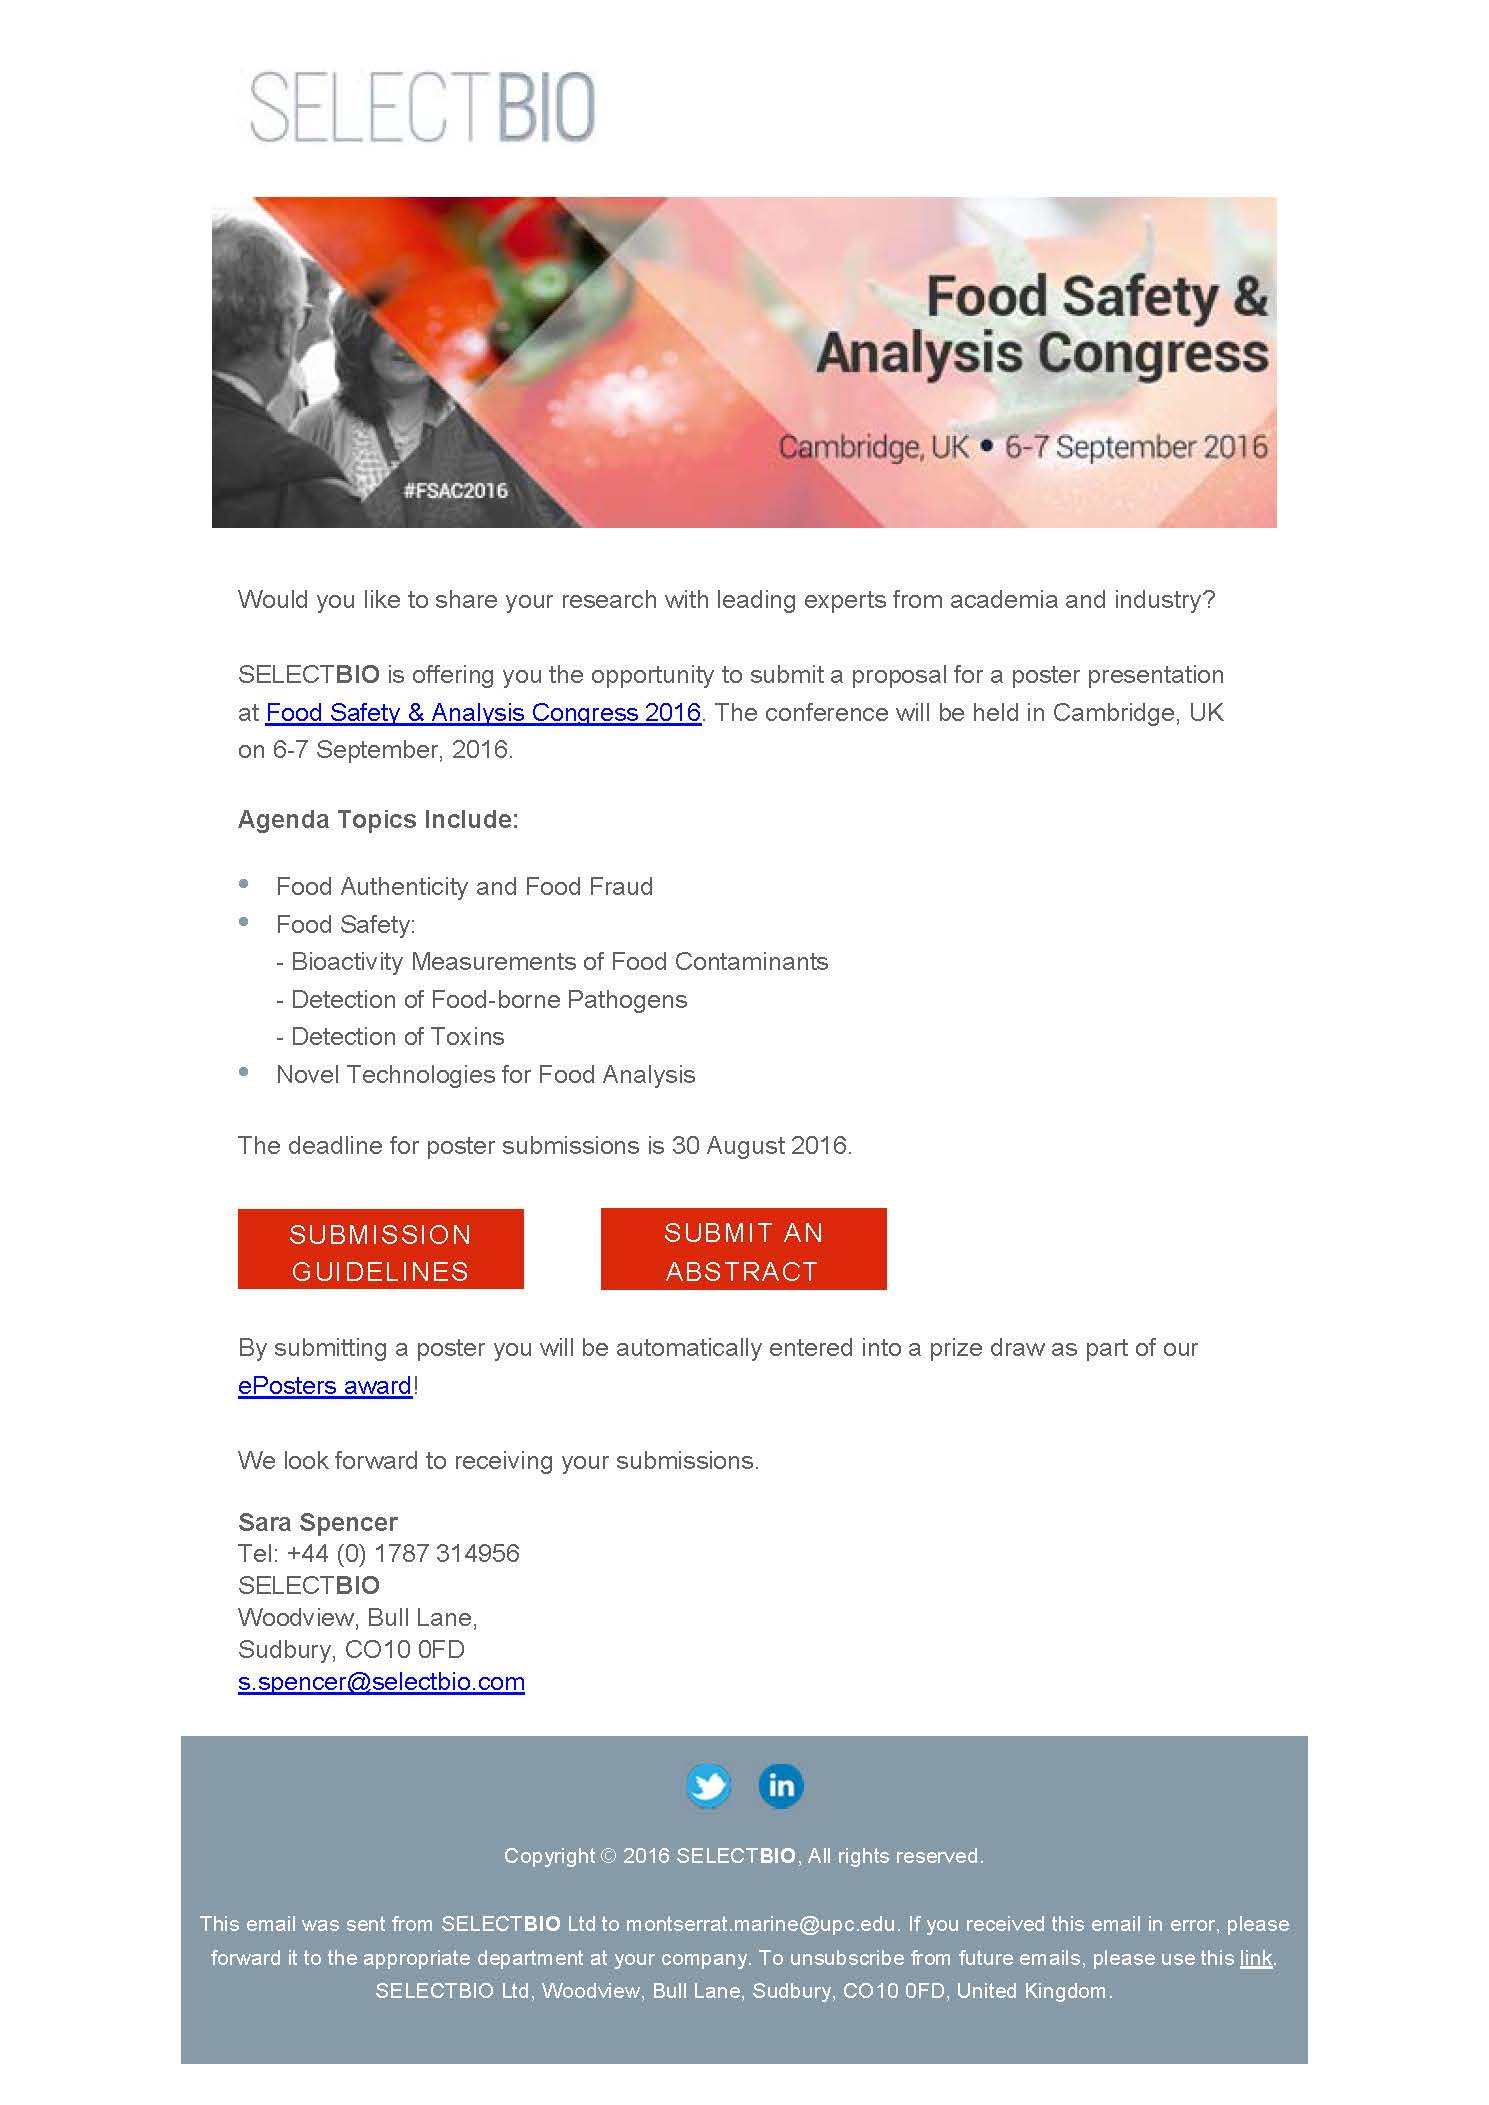 Food Safety and Analysis Congress